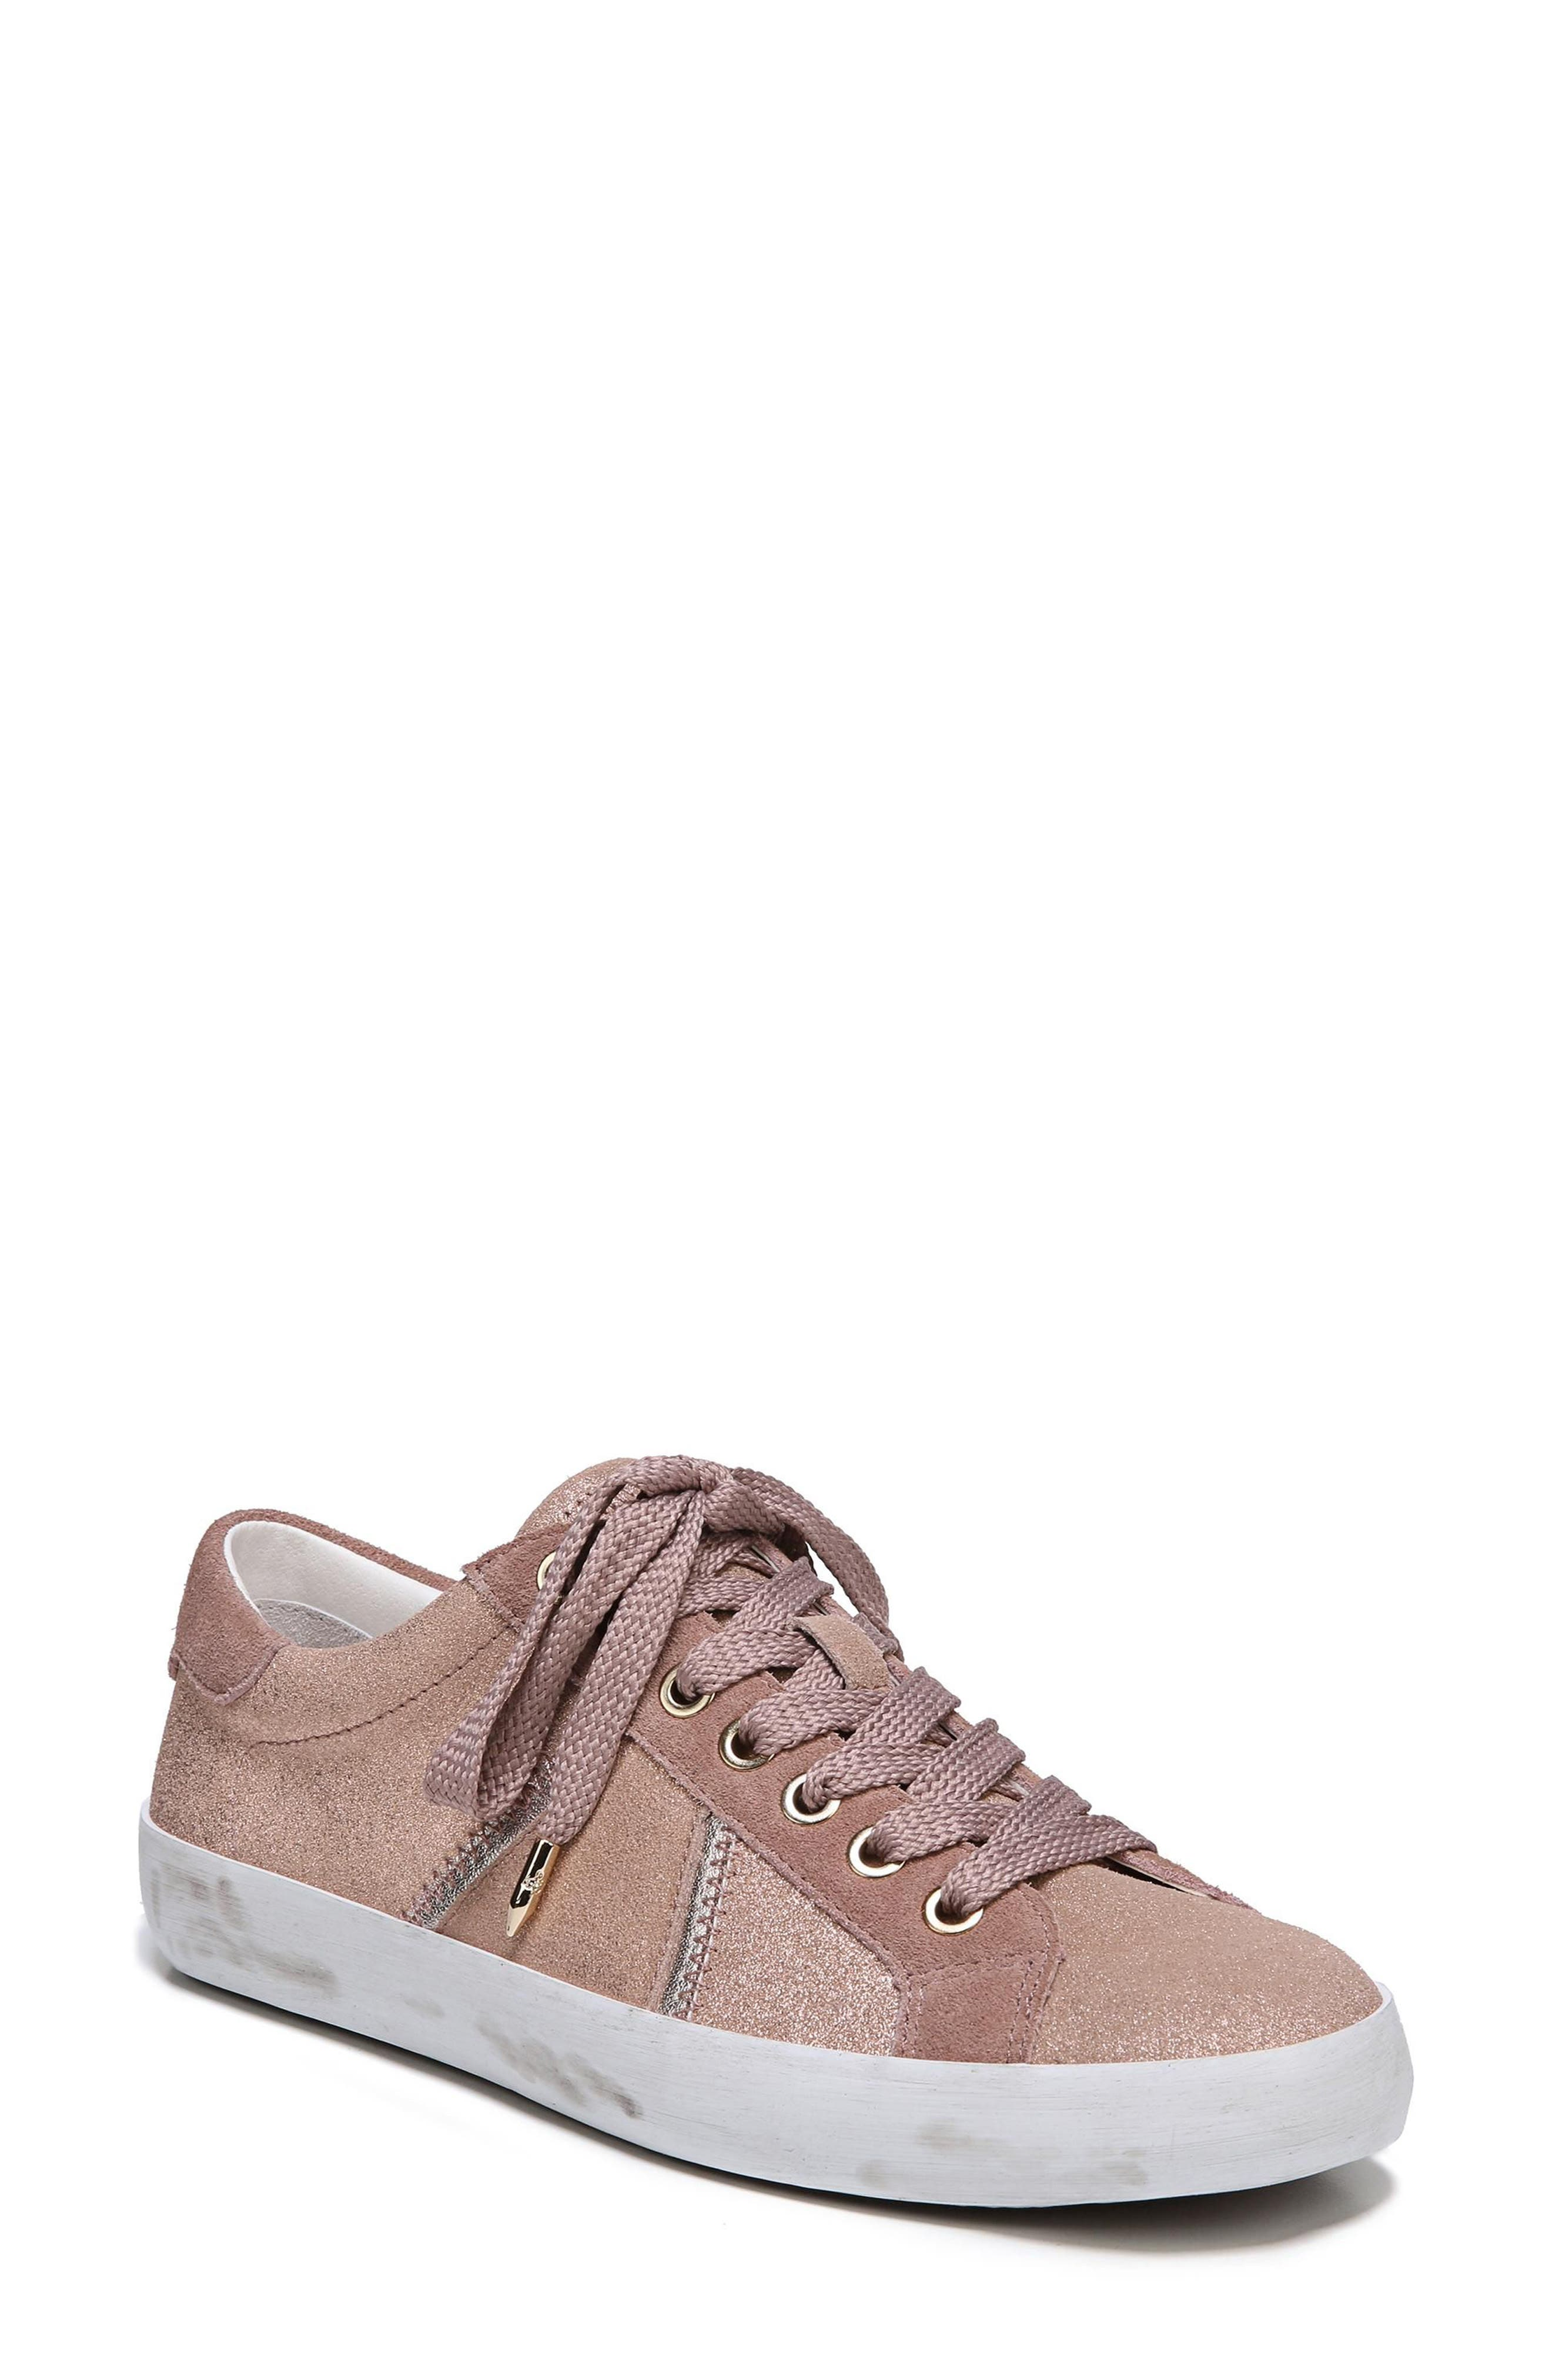 Baylee Sneaker,                             Main thumbnail 1, color,                             Blush Suede